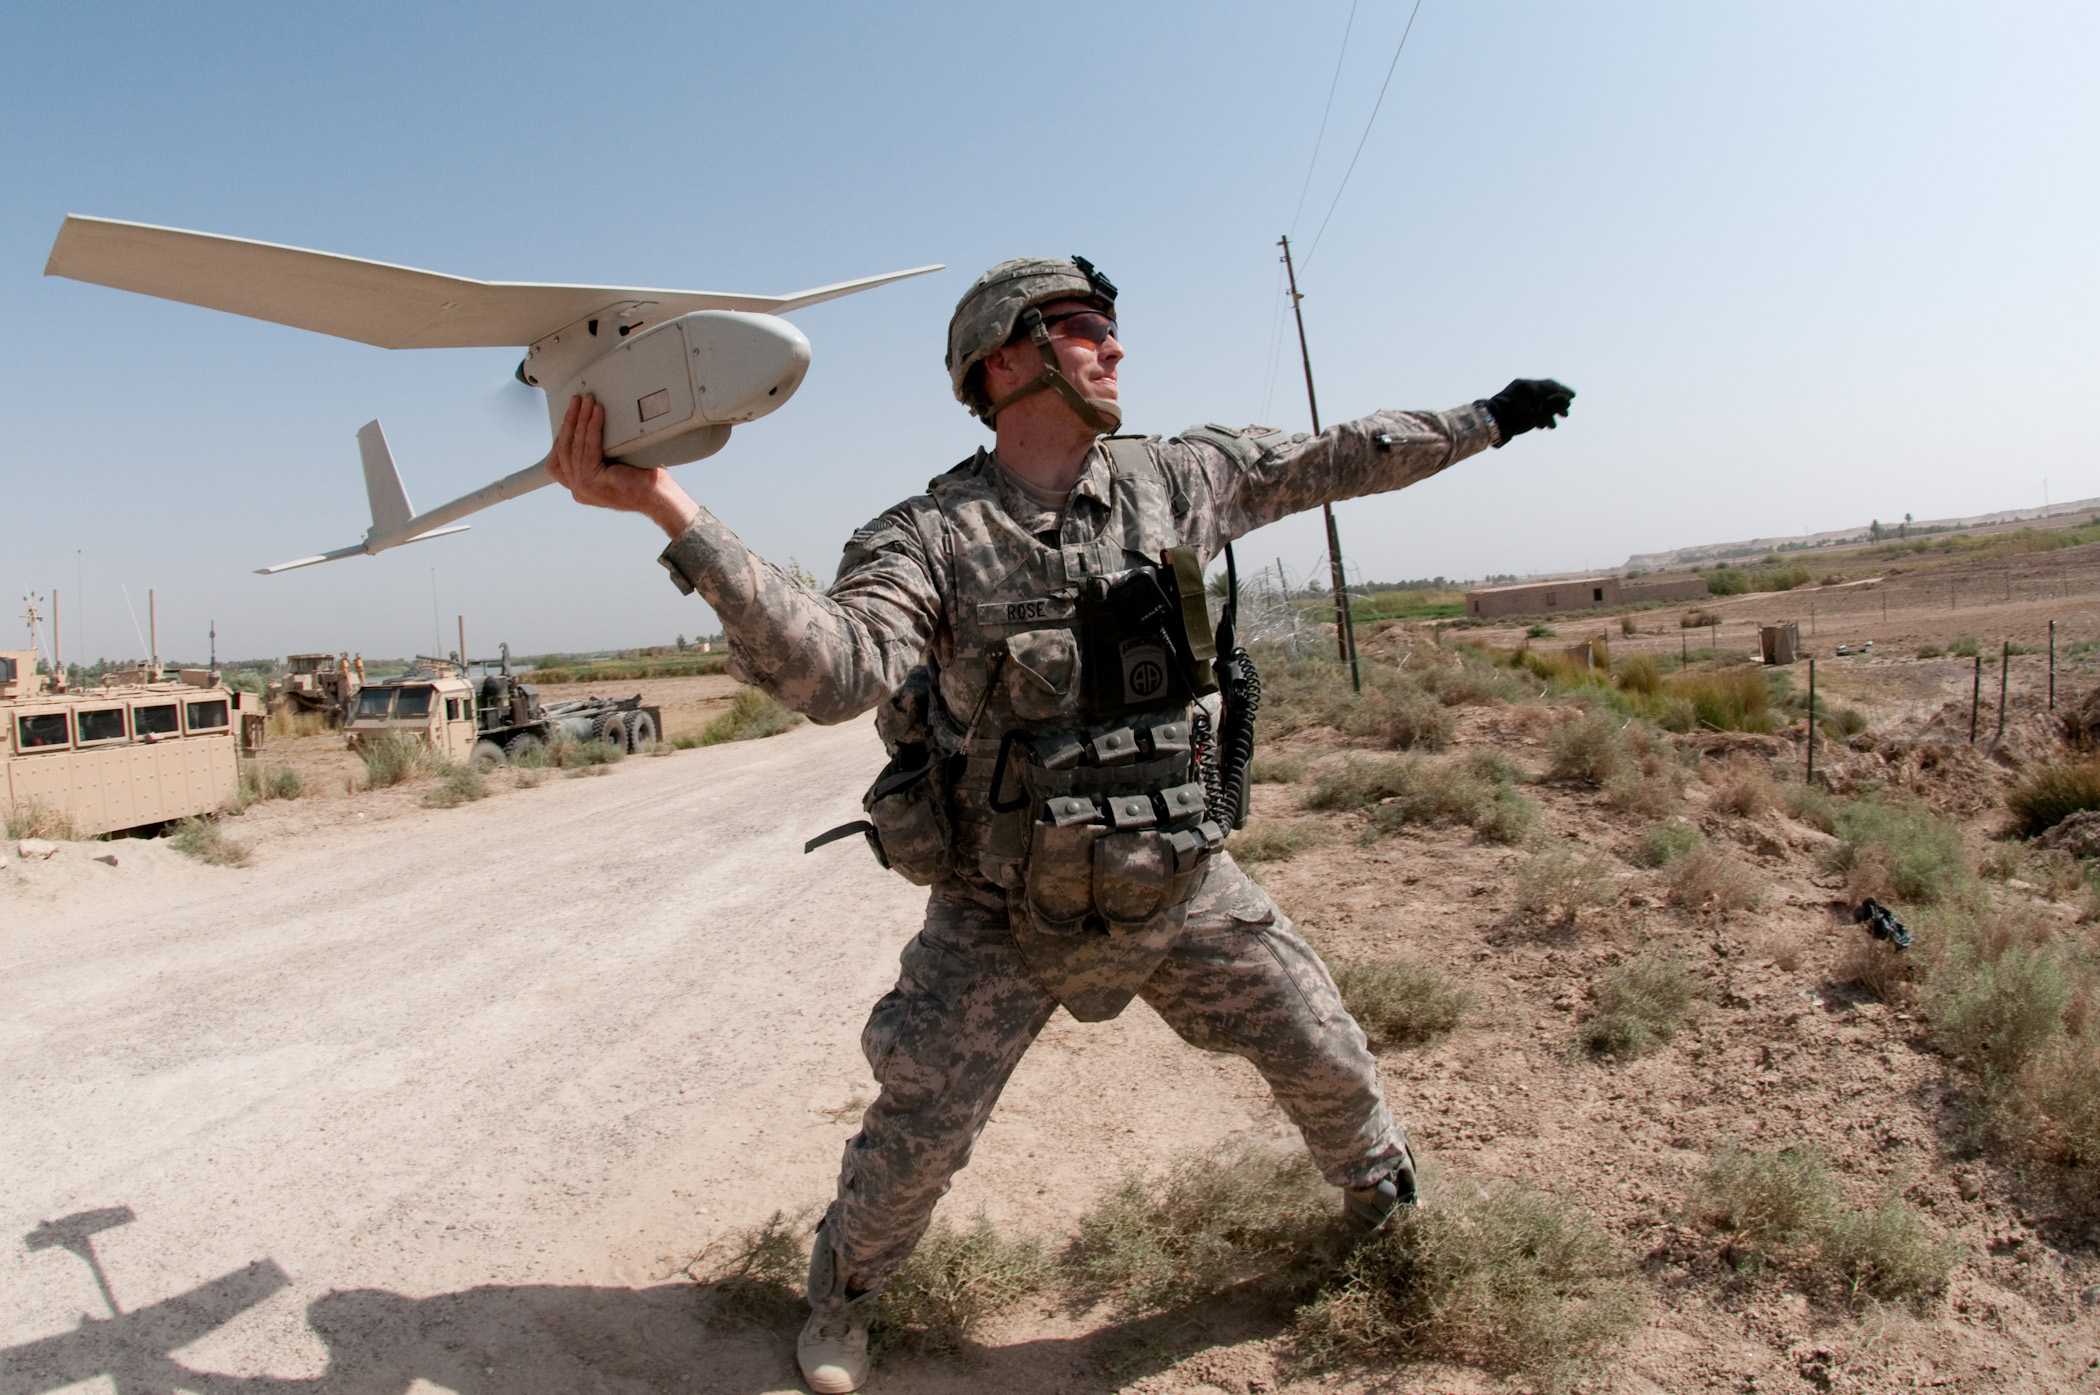 drone usage in war time tactics